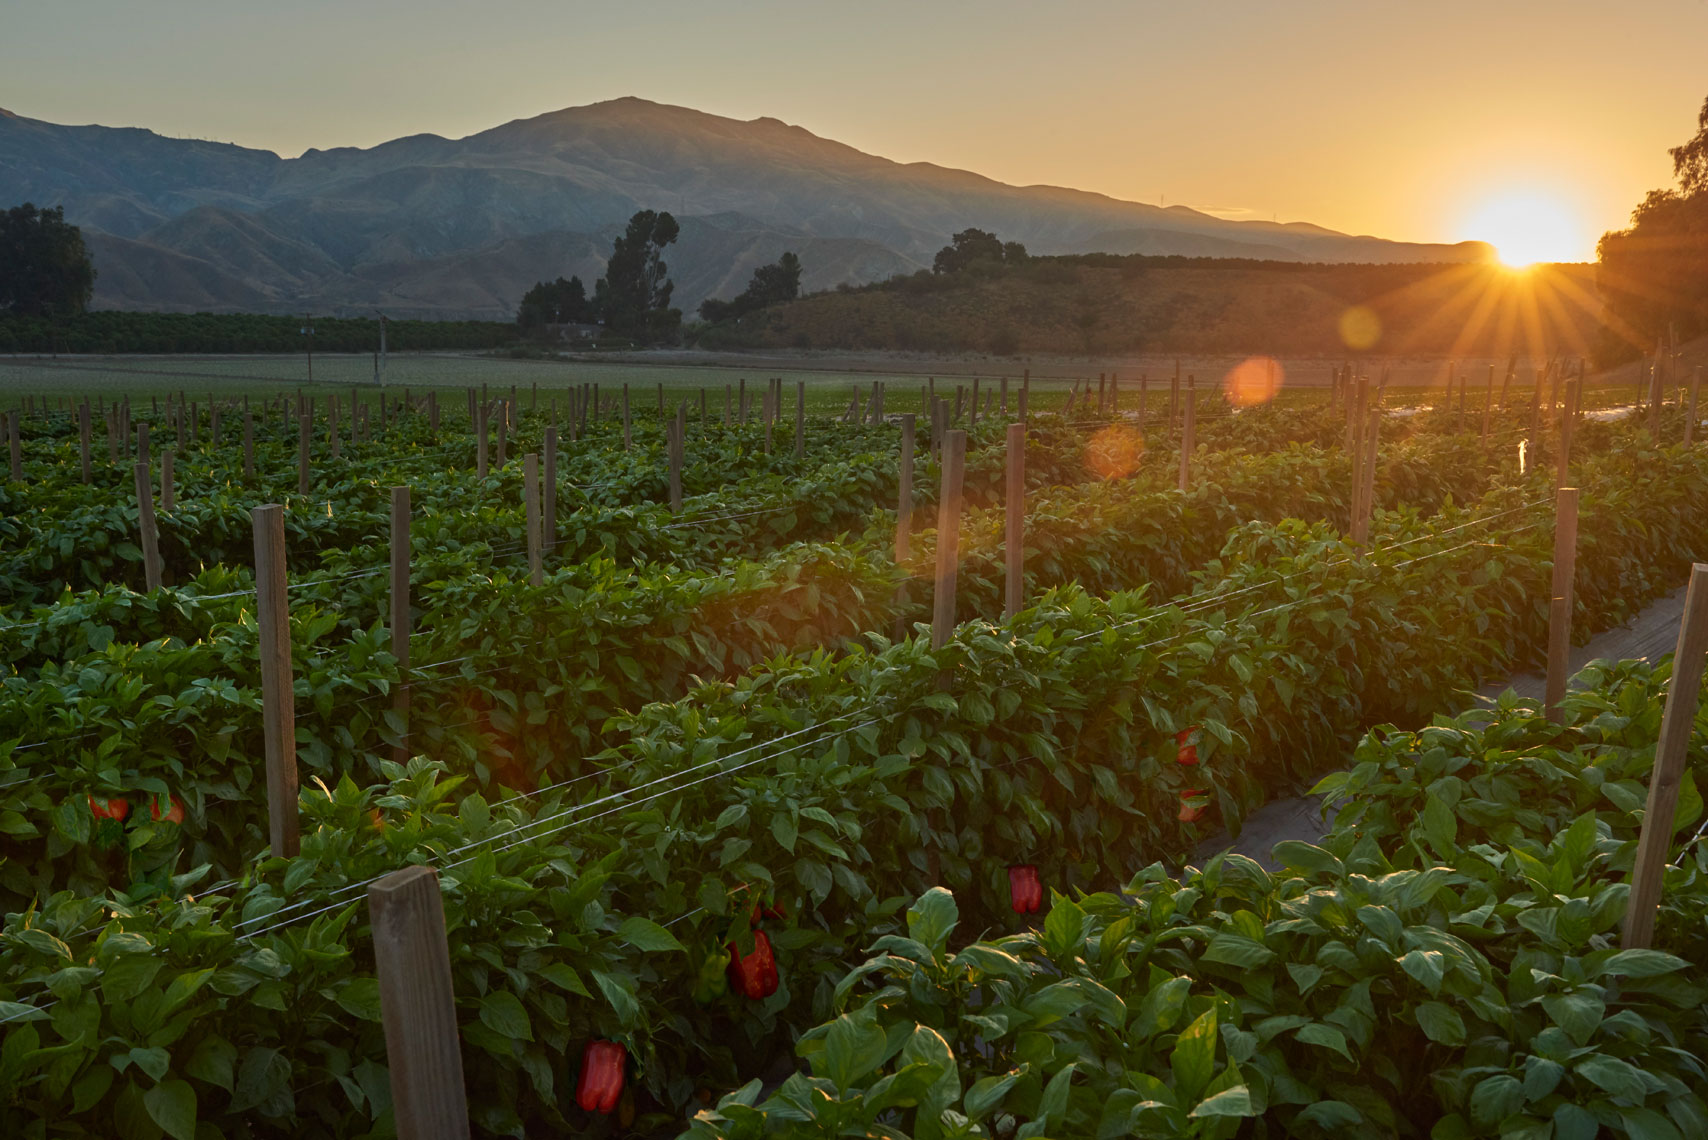 California-bell-pepper-farm-at-sunrise-by-farm-photographer-Joe-Atlas.